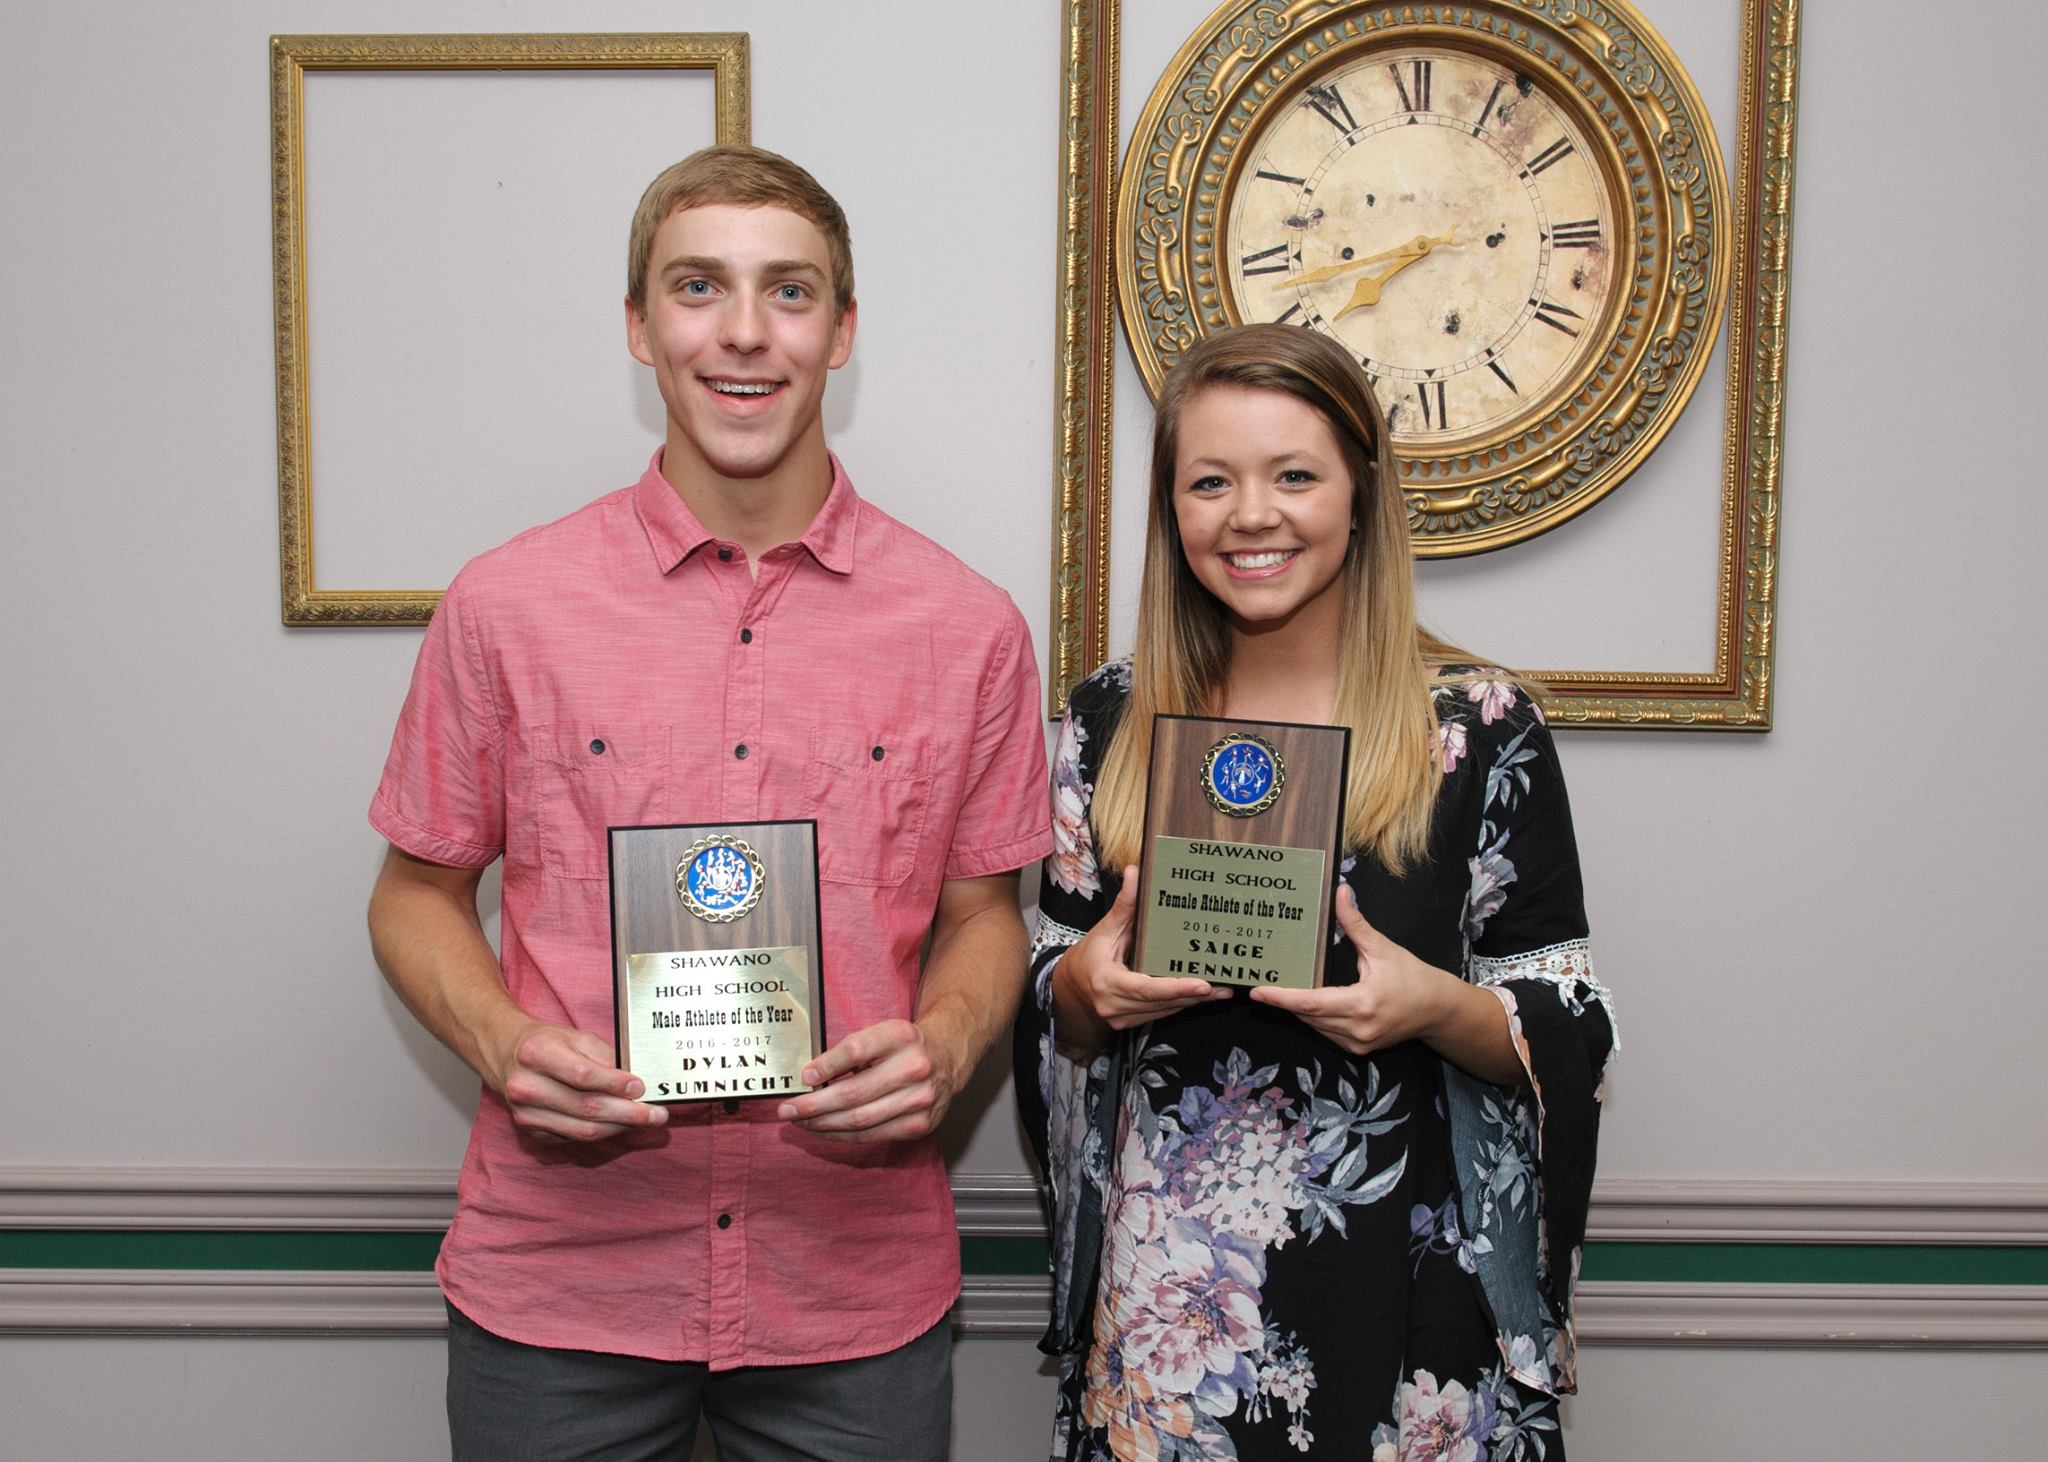 Shawano Hands Out Spring Awards